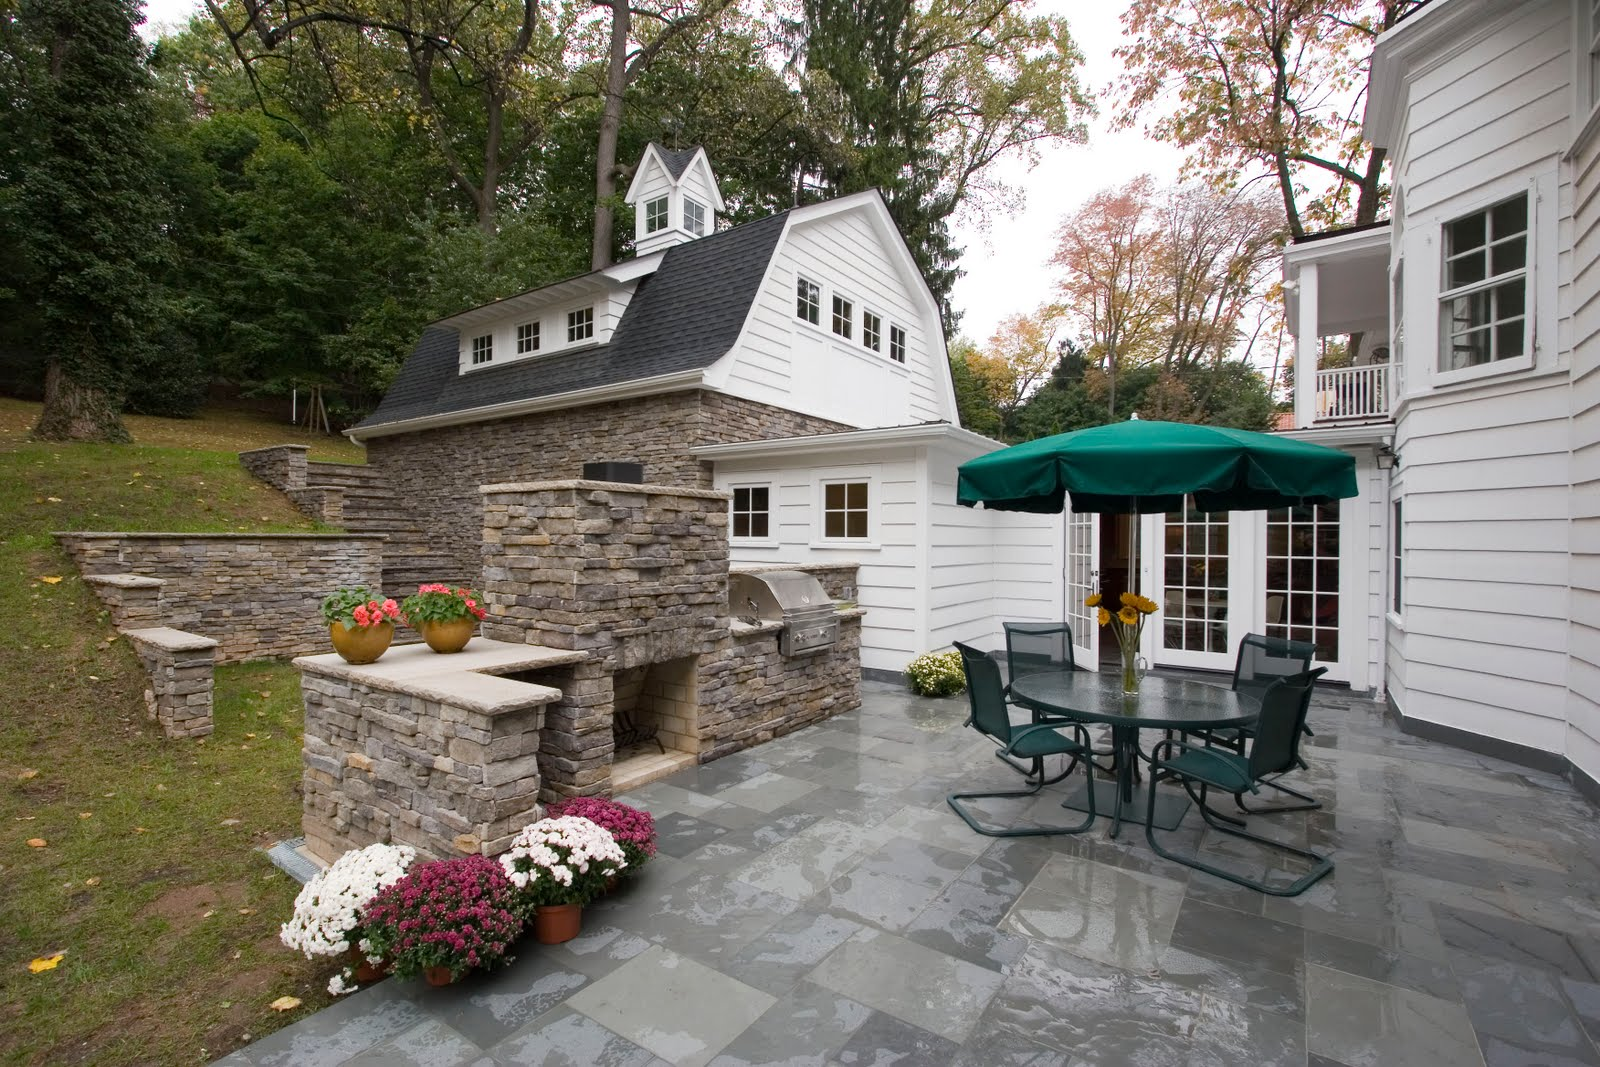 Outdoor Patio with Fireplace and Grill